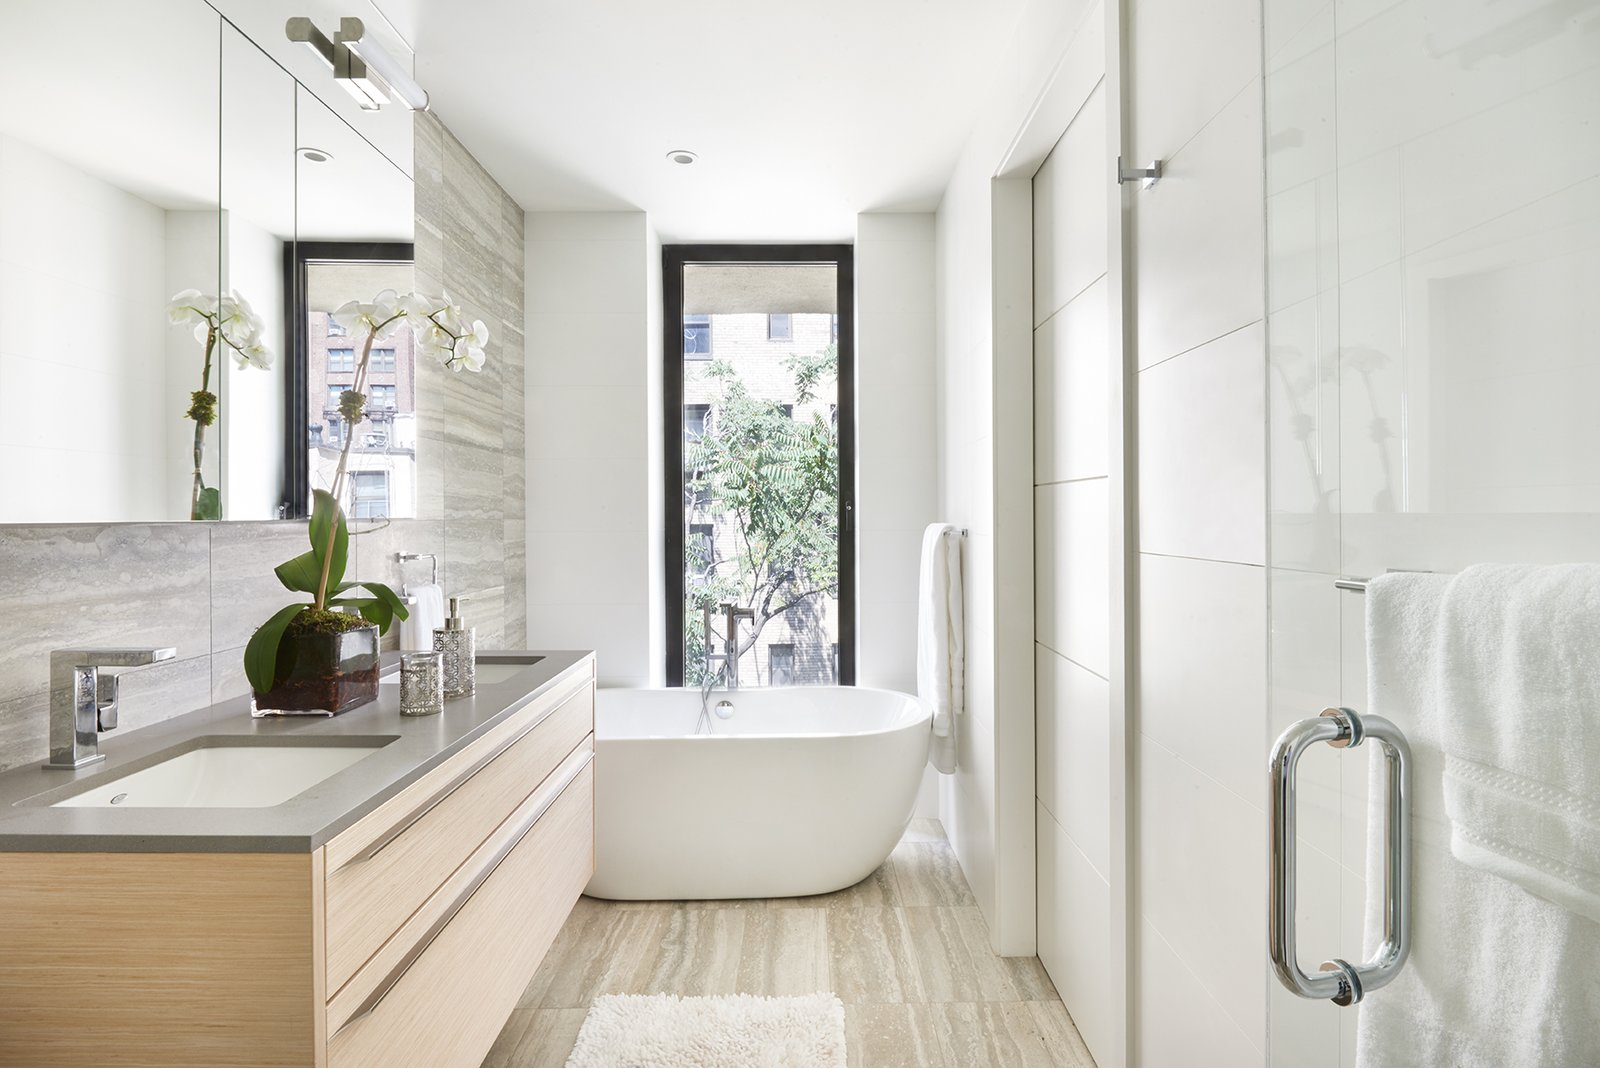 Bath Room, Freestanding Tub, Enclosed Shower, Marble Wall, and Marble Floor  Photos from La Maison, Duplex Penthouse